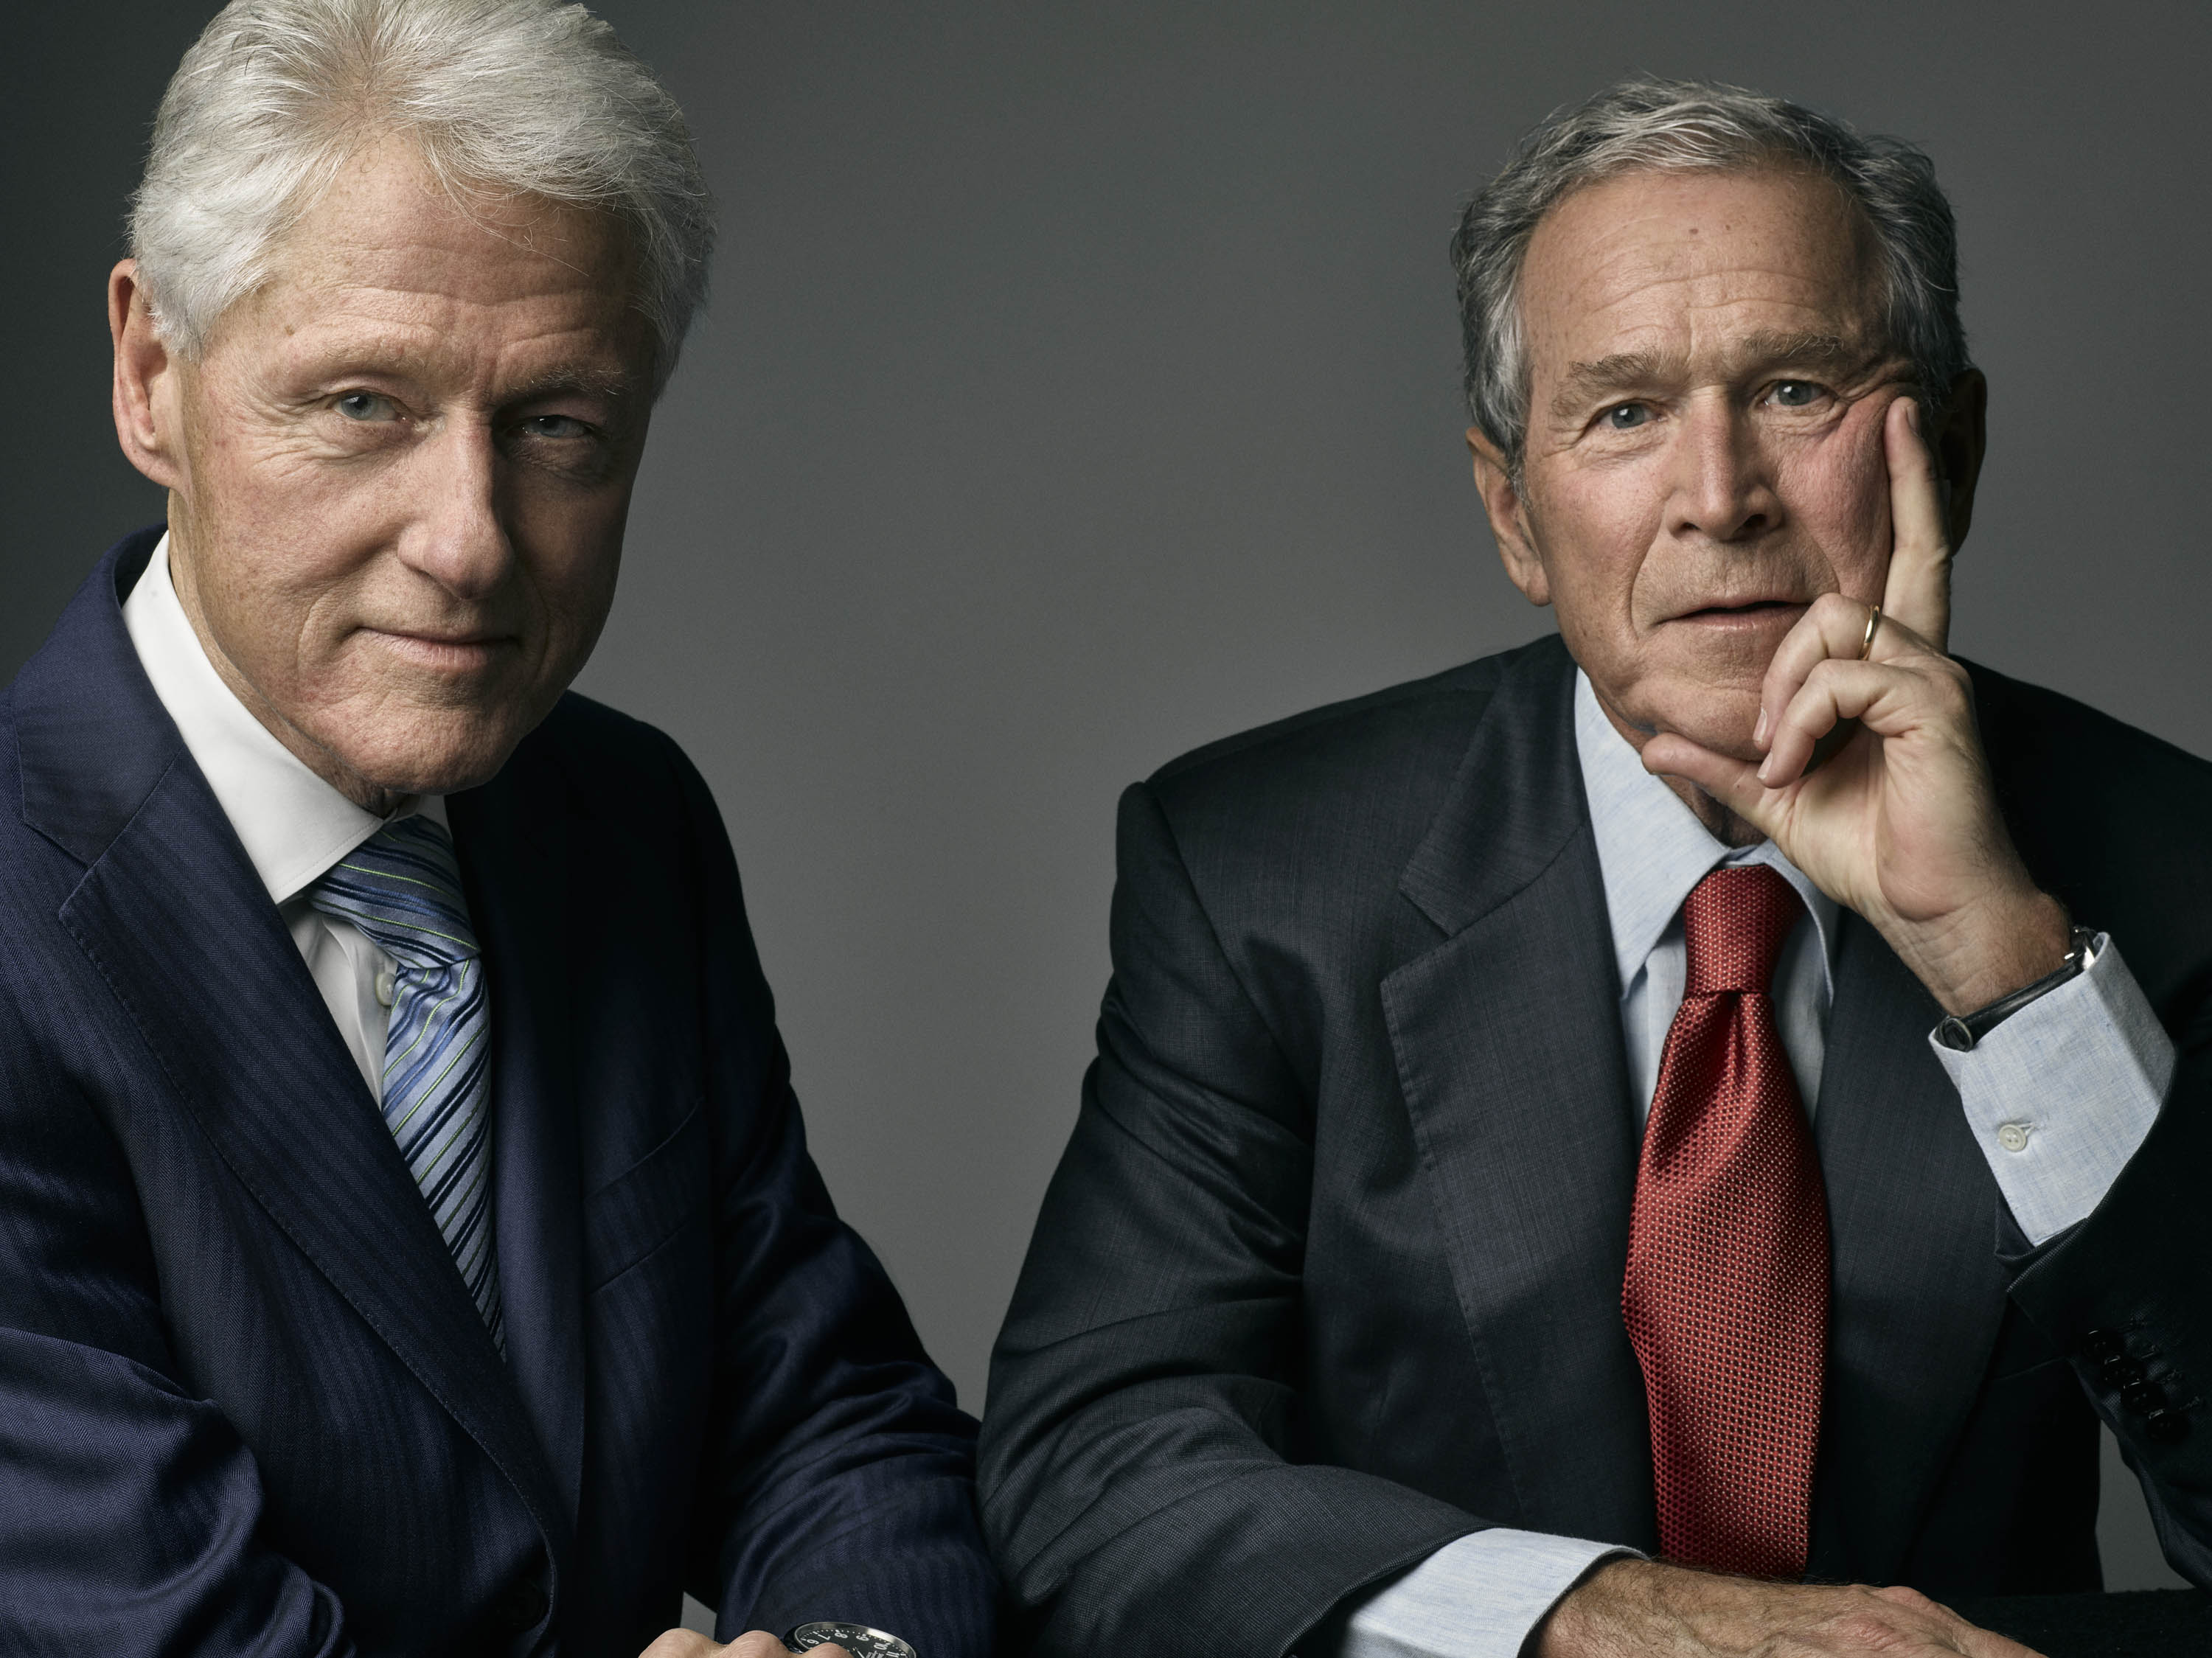 Bill Clinton and George W. Bush sat down with TIME at the Bush Center in Dallas, where they celebrated the first class of Presidential Leadership Scholars.